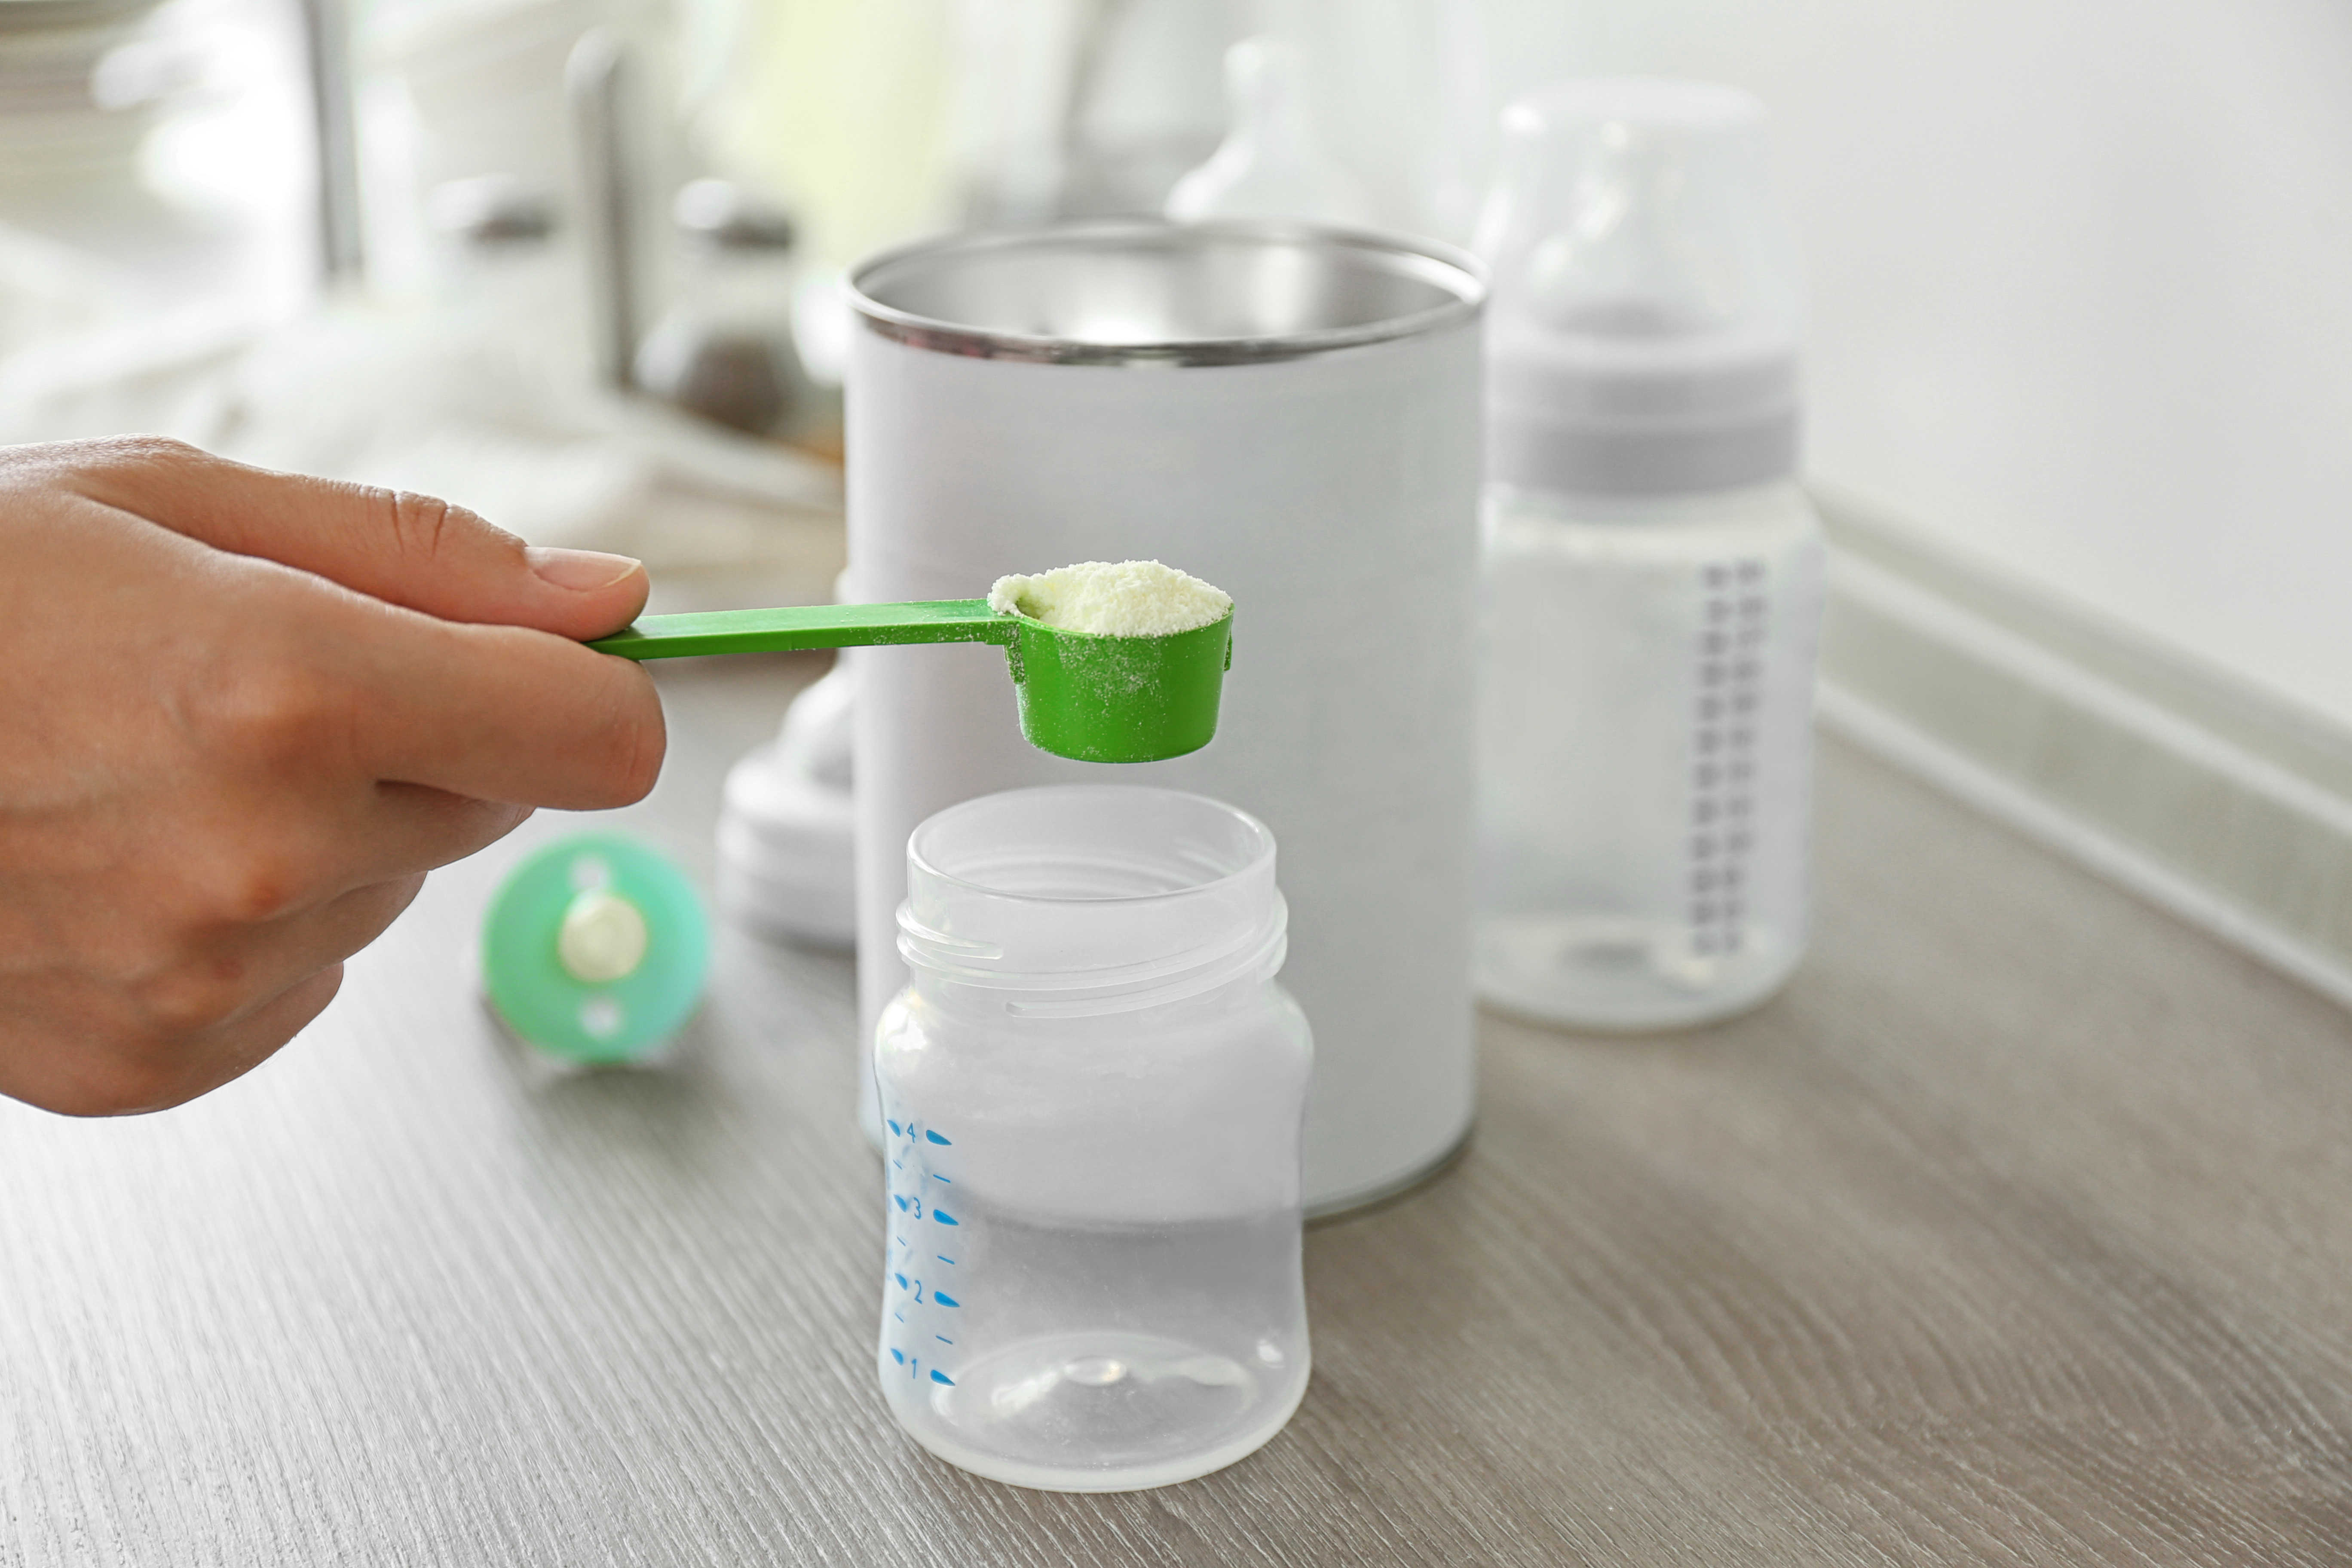 Formula measuring spoon, bottle, and can.